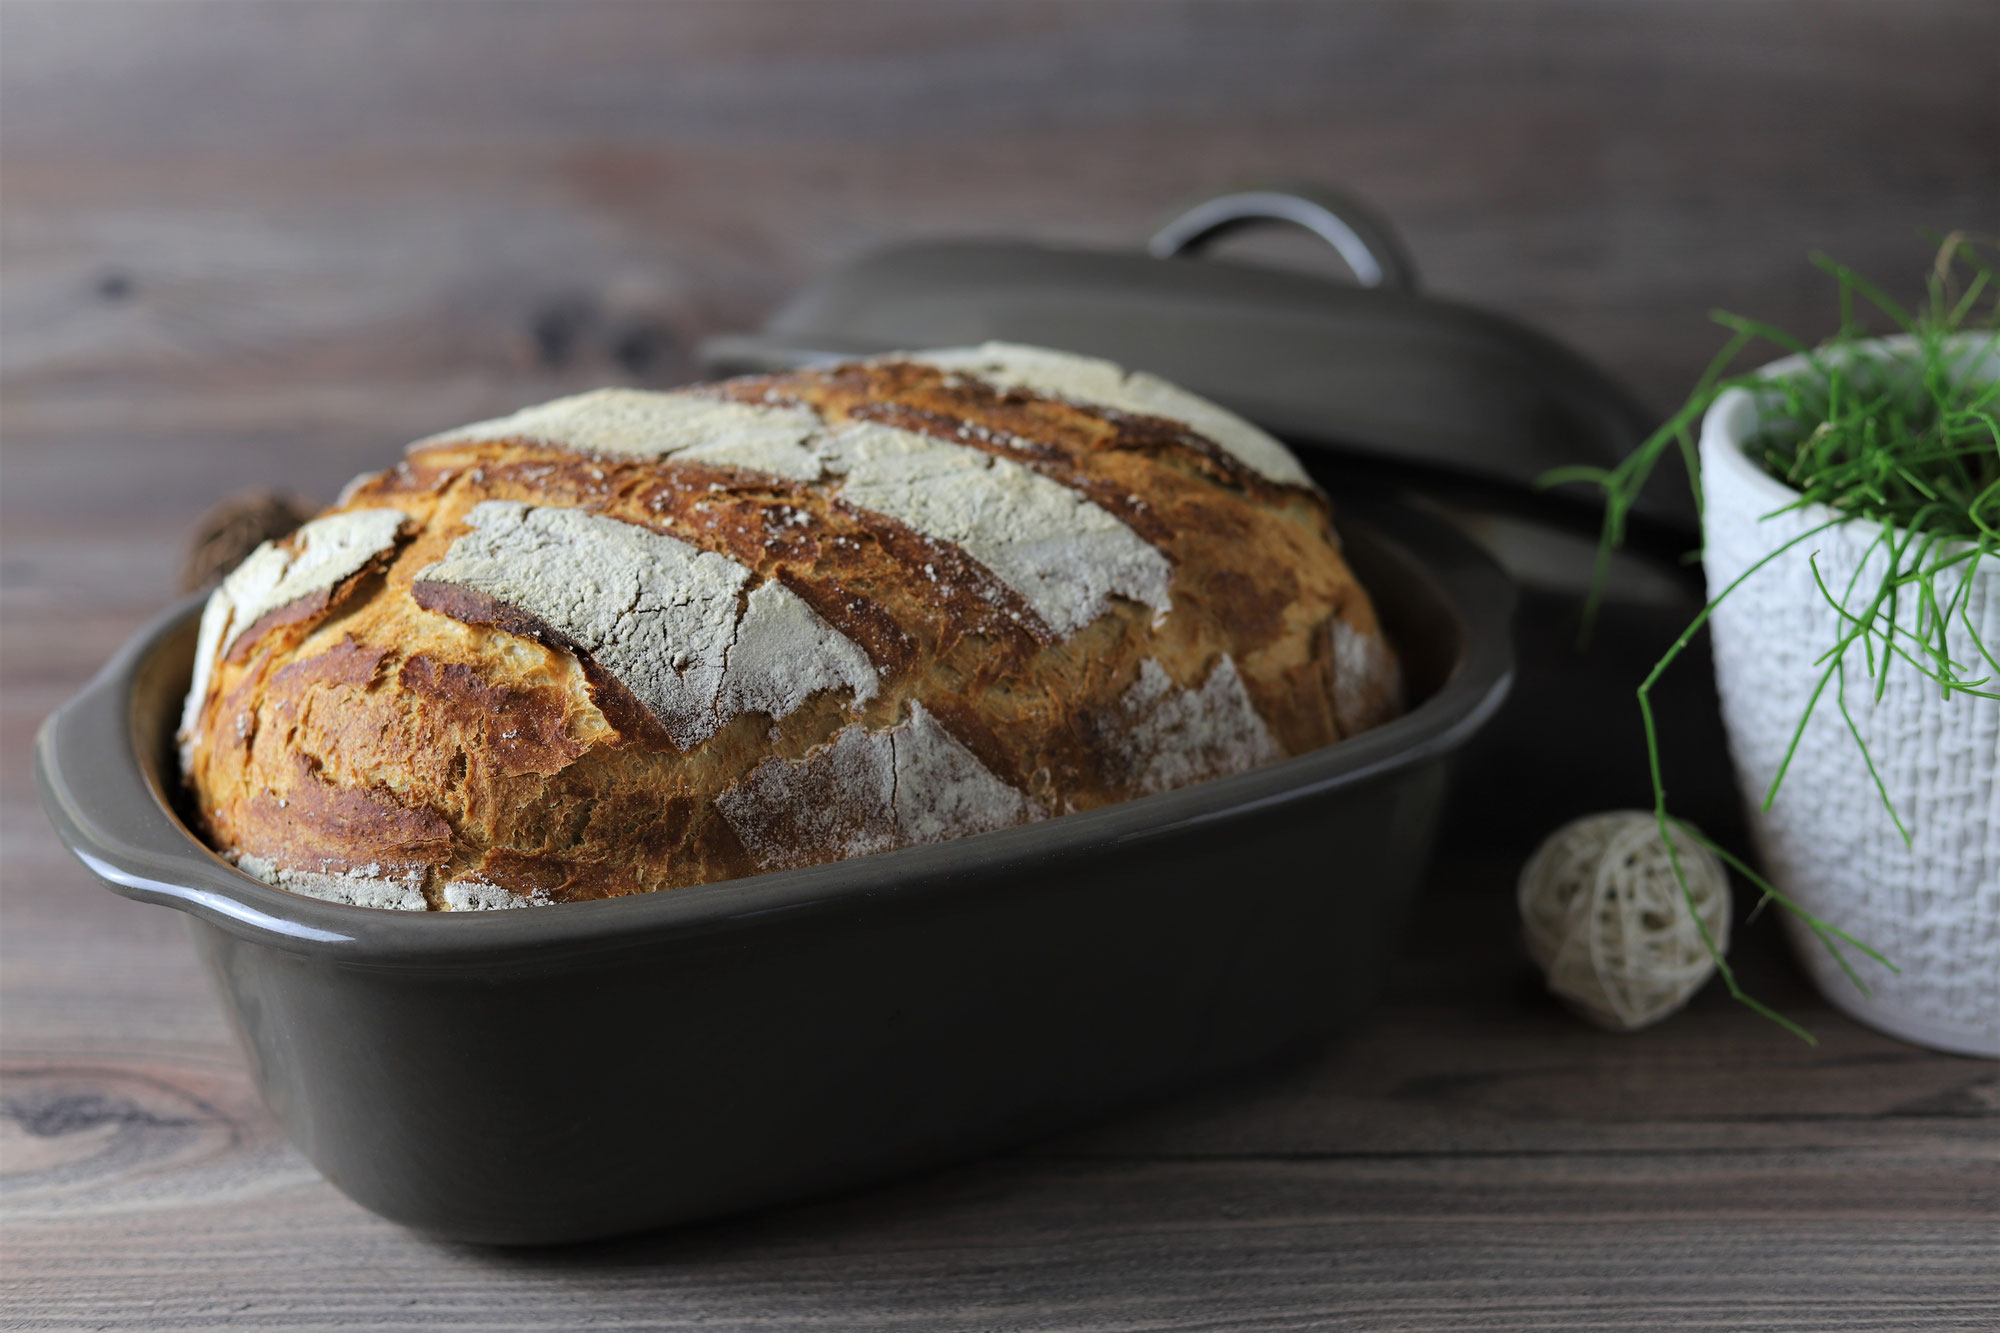 Ofenmeisters Familienbrot im Ofenmeister von Pampered Chef®